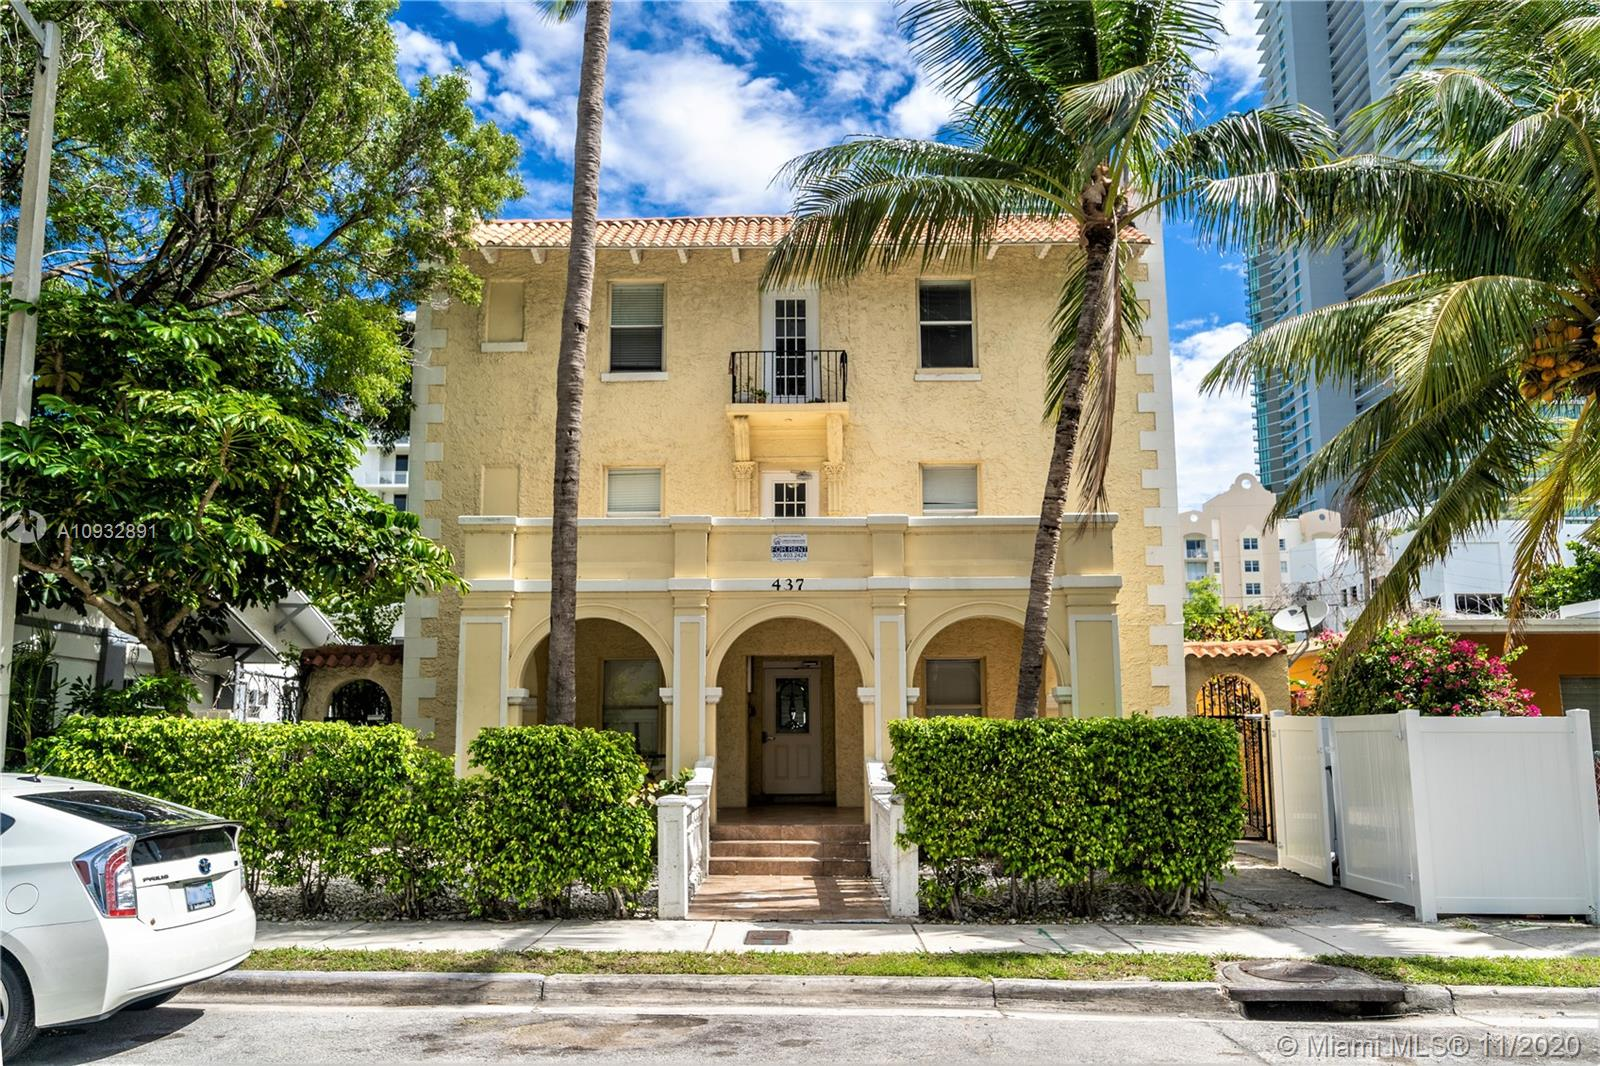 437 NE 29 ST #201 For Sale A10932891, FL